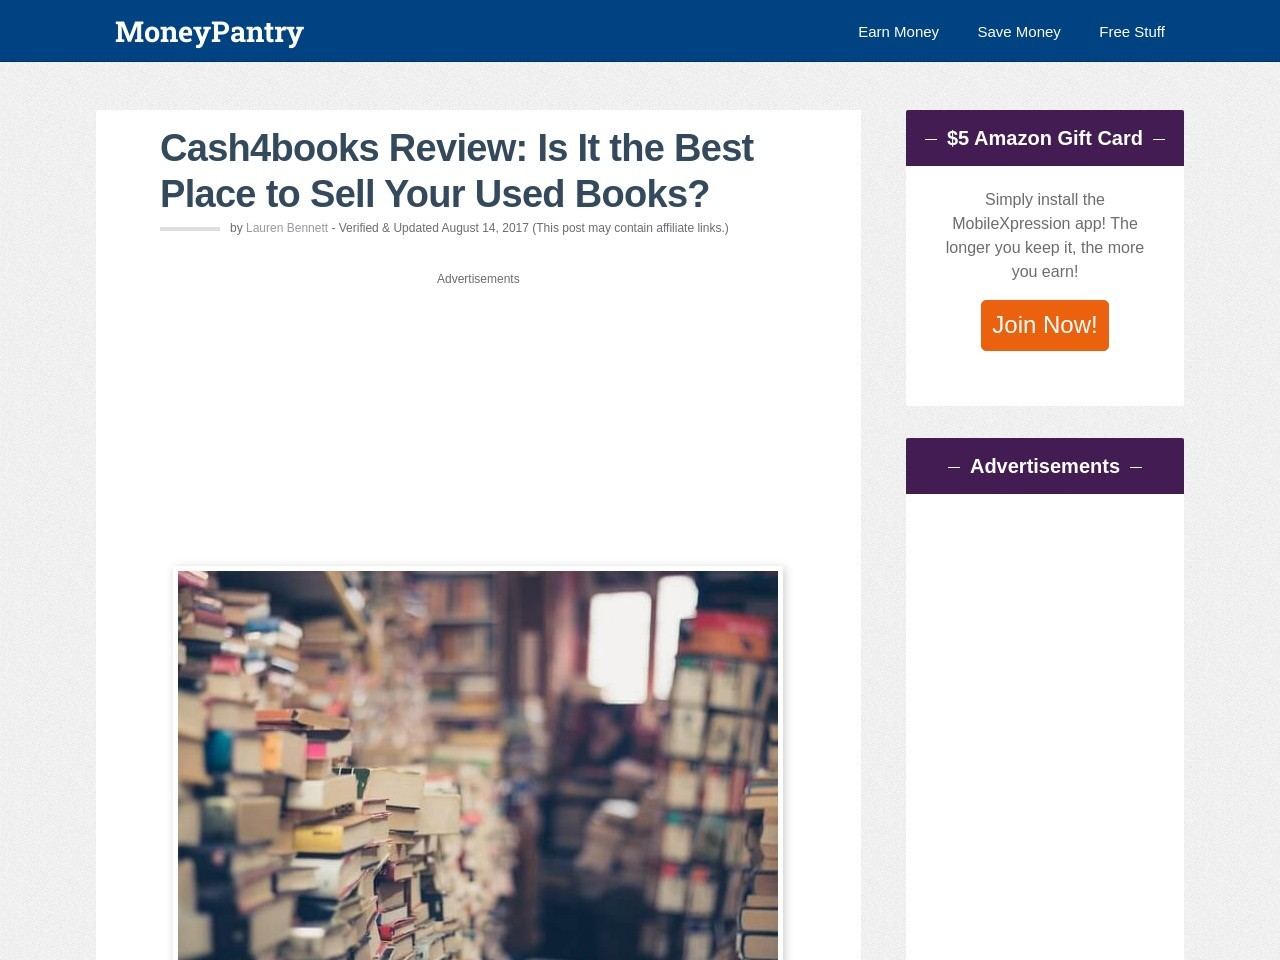 Cash4books Review: Is It the Best Place to Sell Your Used Books?